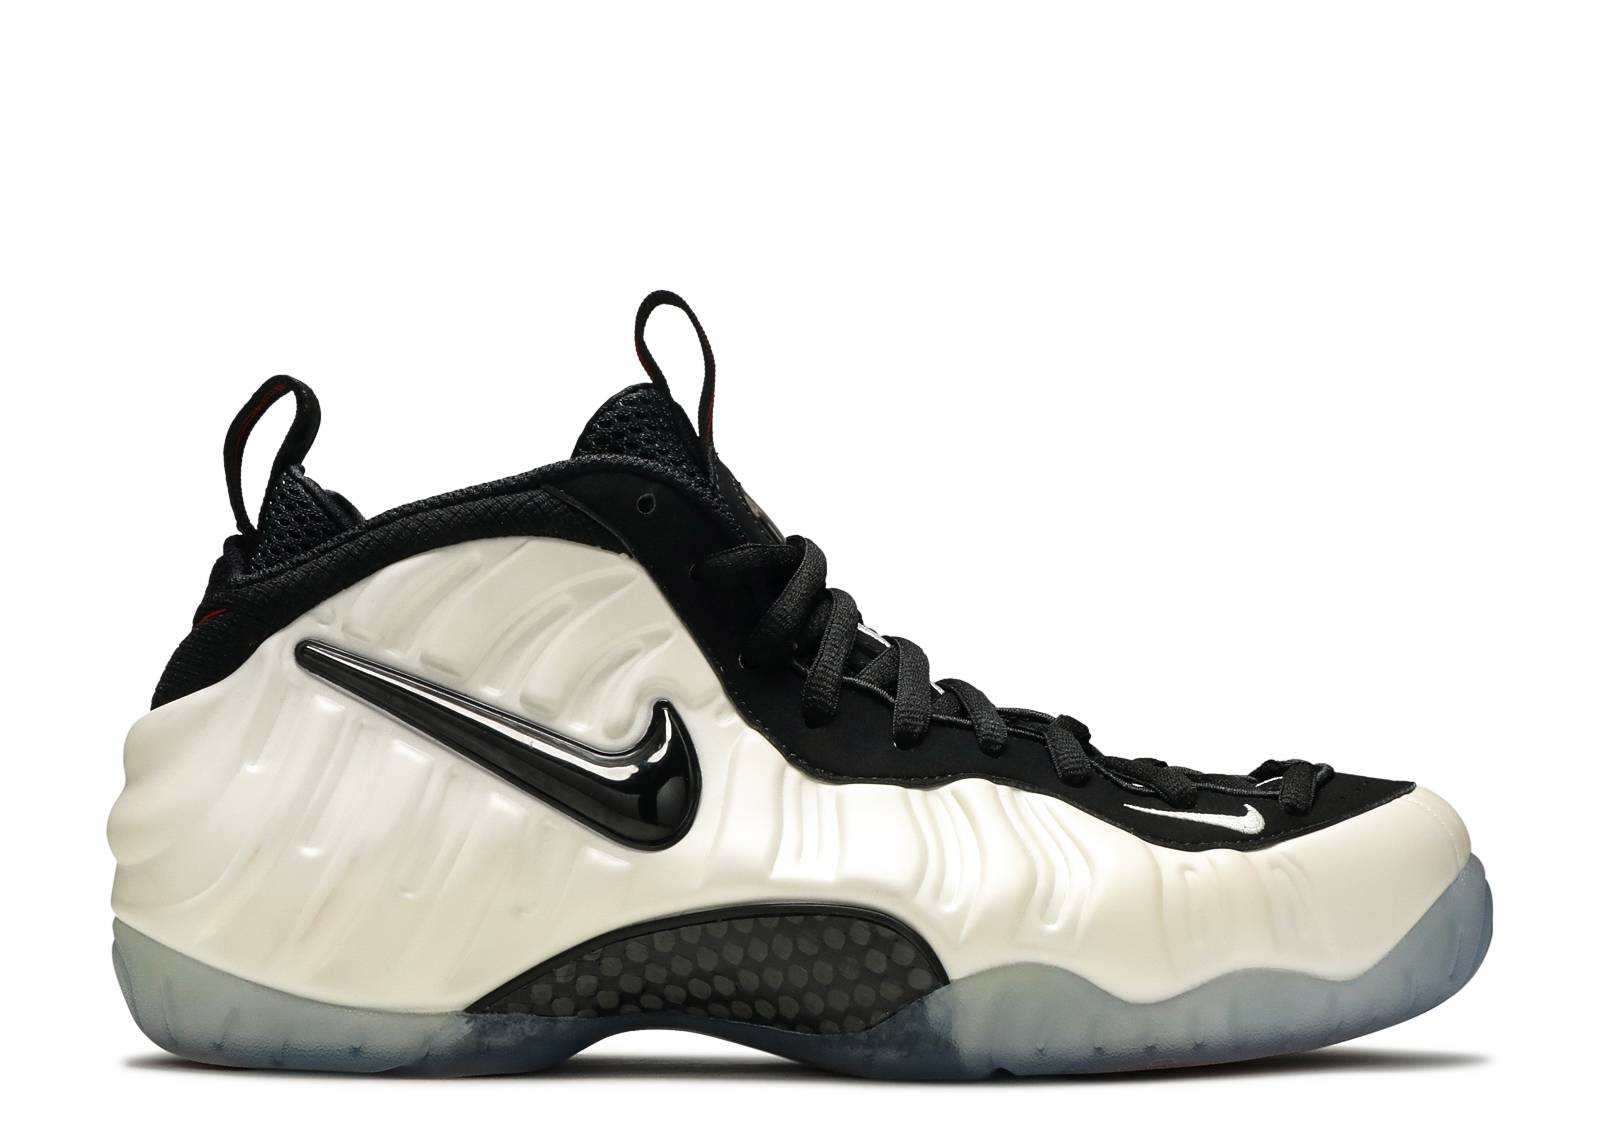 nike-air-foamposite-pro-class-of-97-white-black-true-red-042505_1.jpg